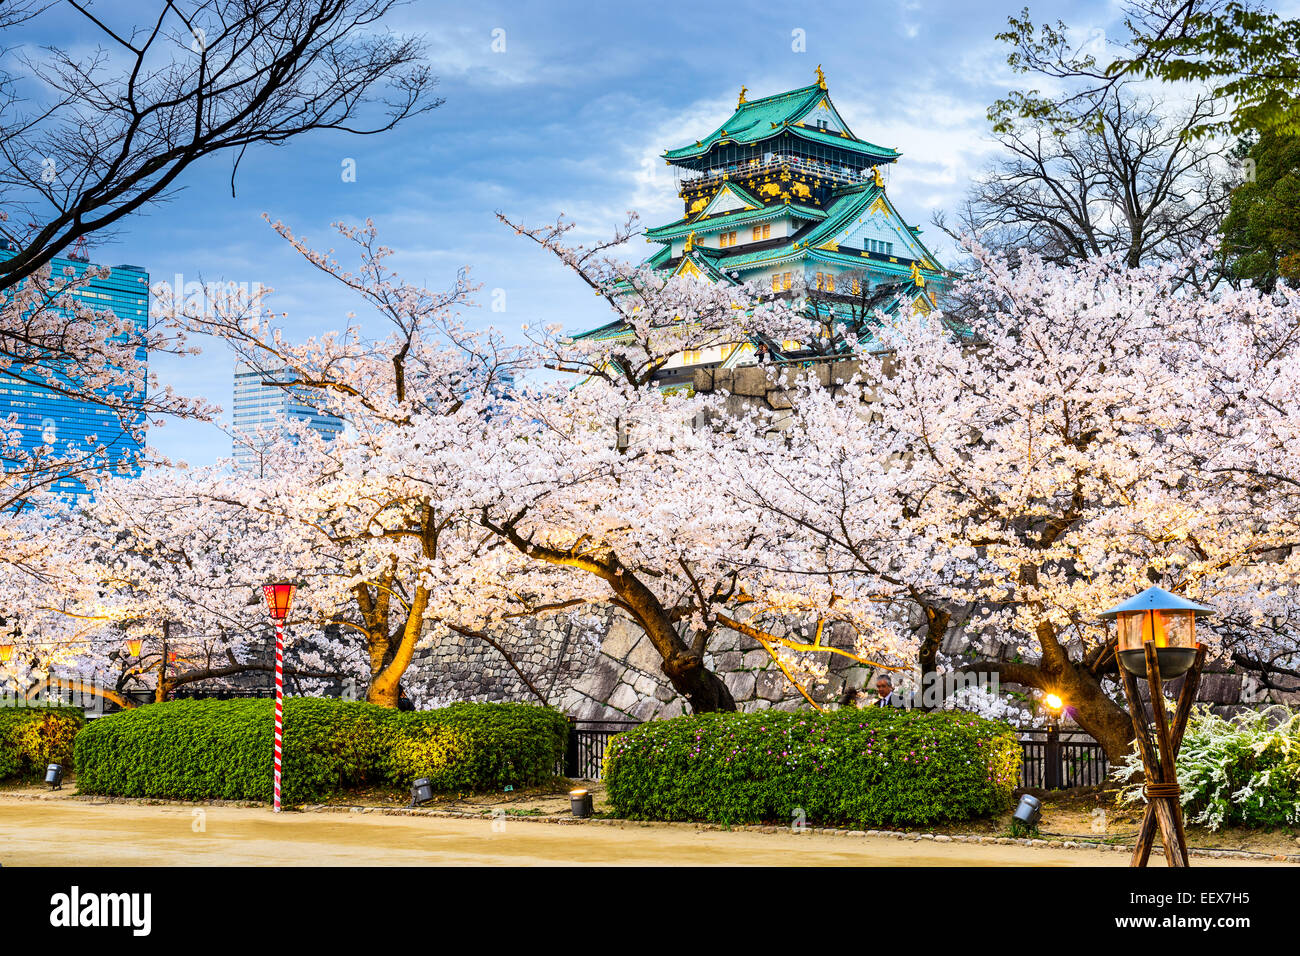 Osaka, Japon au château d'Osaka durant la saison de printemps. Photo Stock